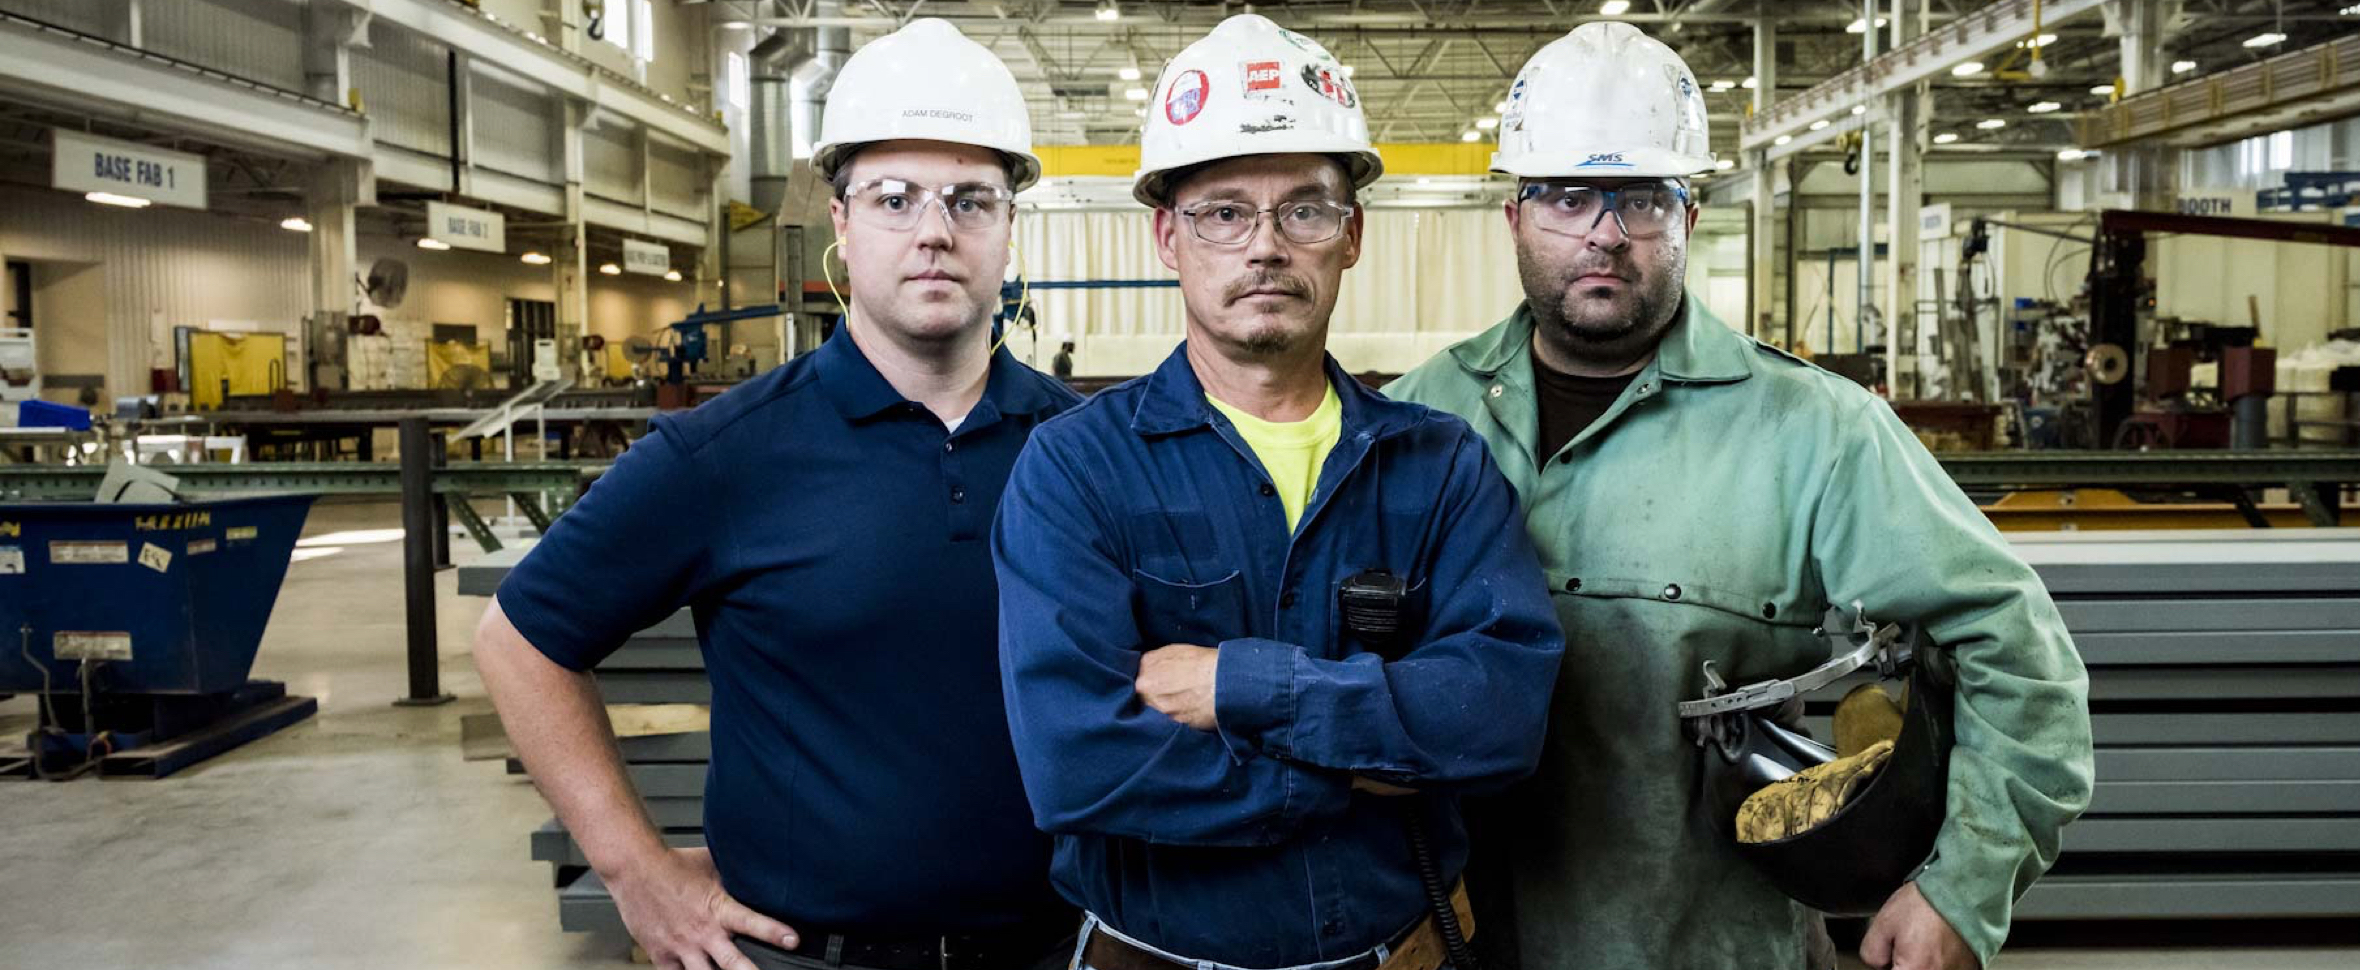 Integrity - Three strong workers proud of their hard work and dedication to getting the job done right